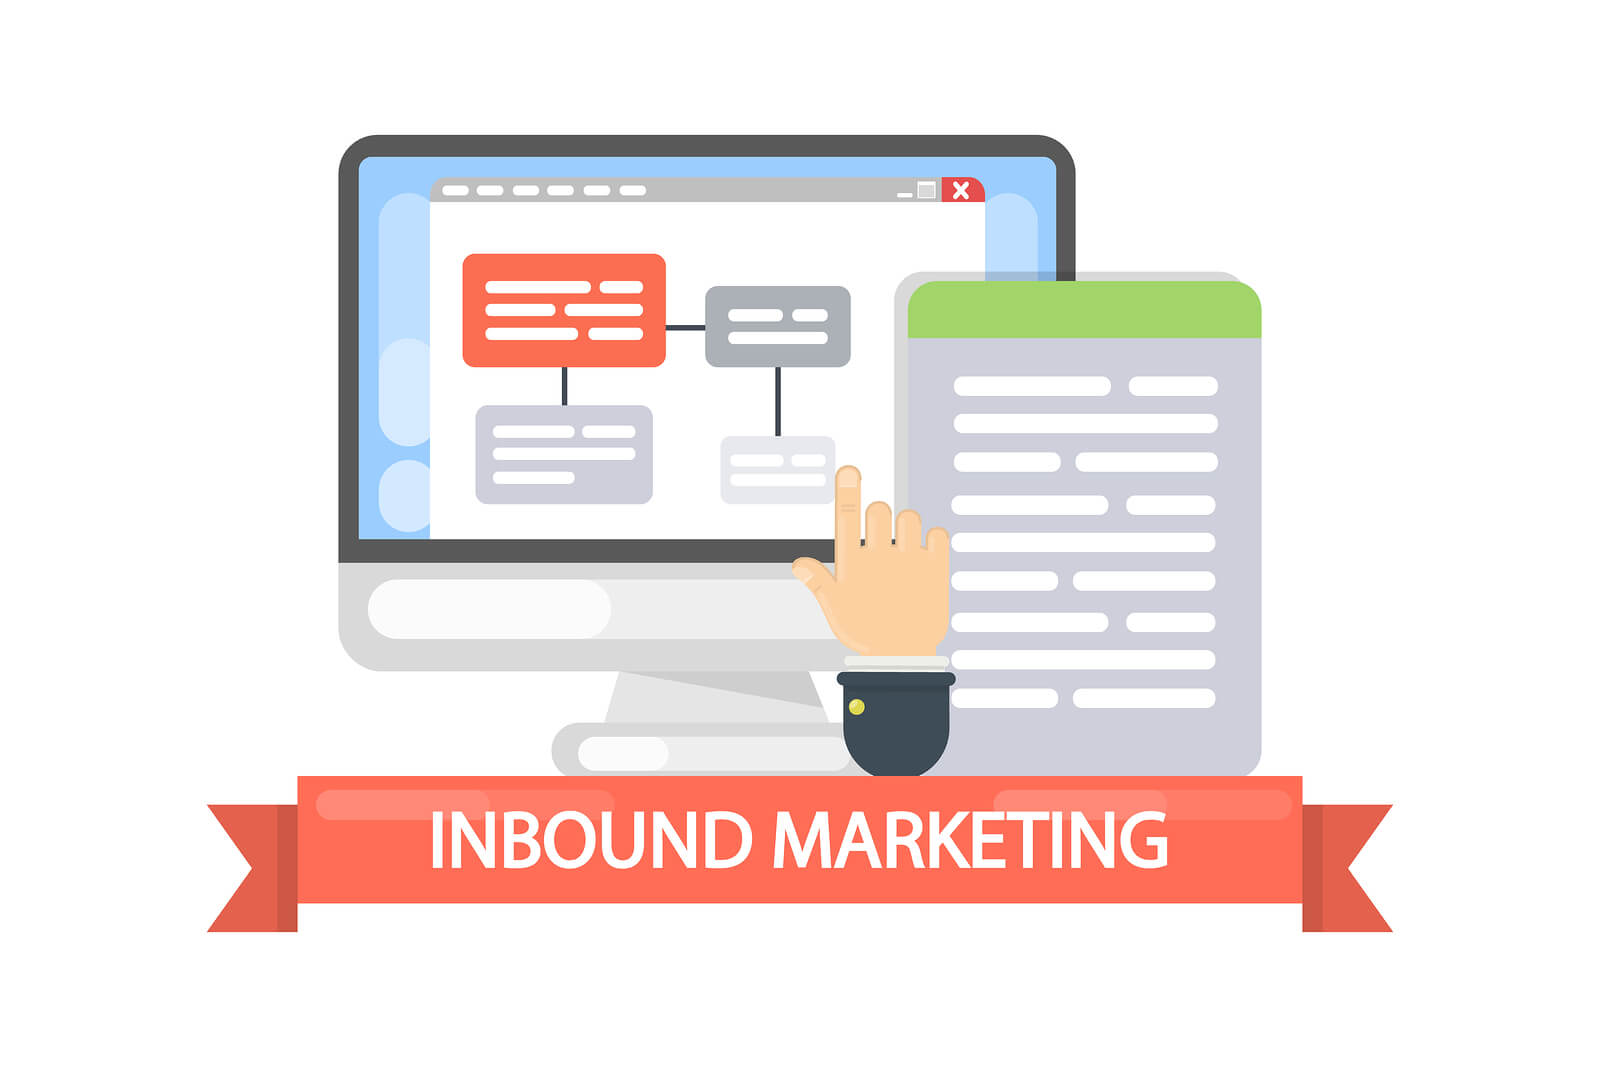 como-aumentar-minhas-vendas-o-que-e-inbound-marketing